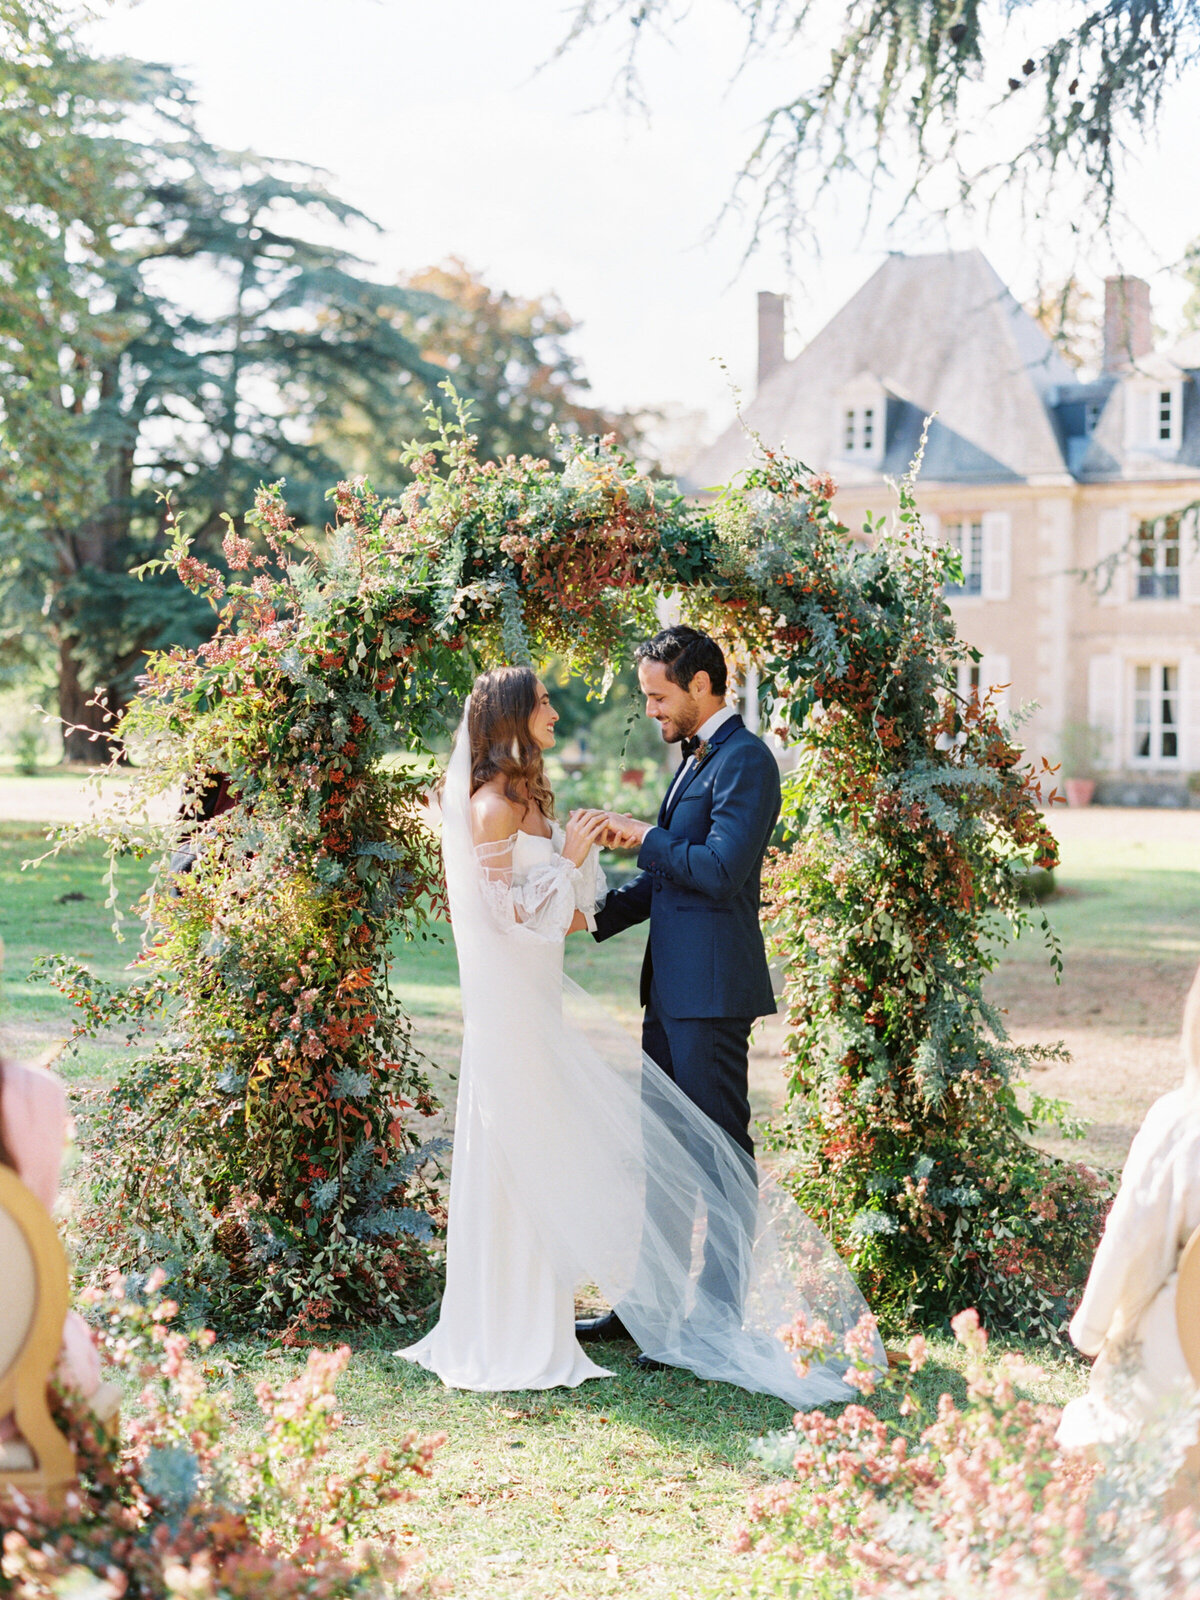 chateau-bouthonvilliers-wedding-paris-wedding-photographer-mackenzie-reiter-photography-72